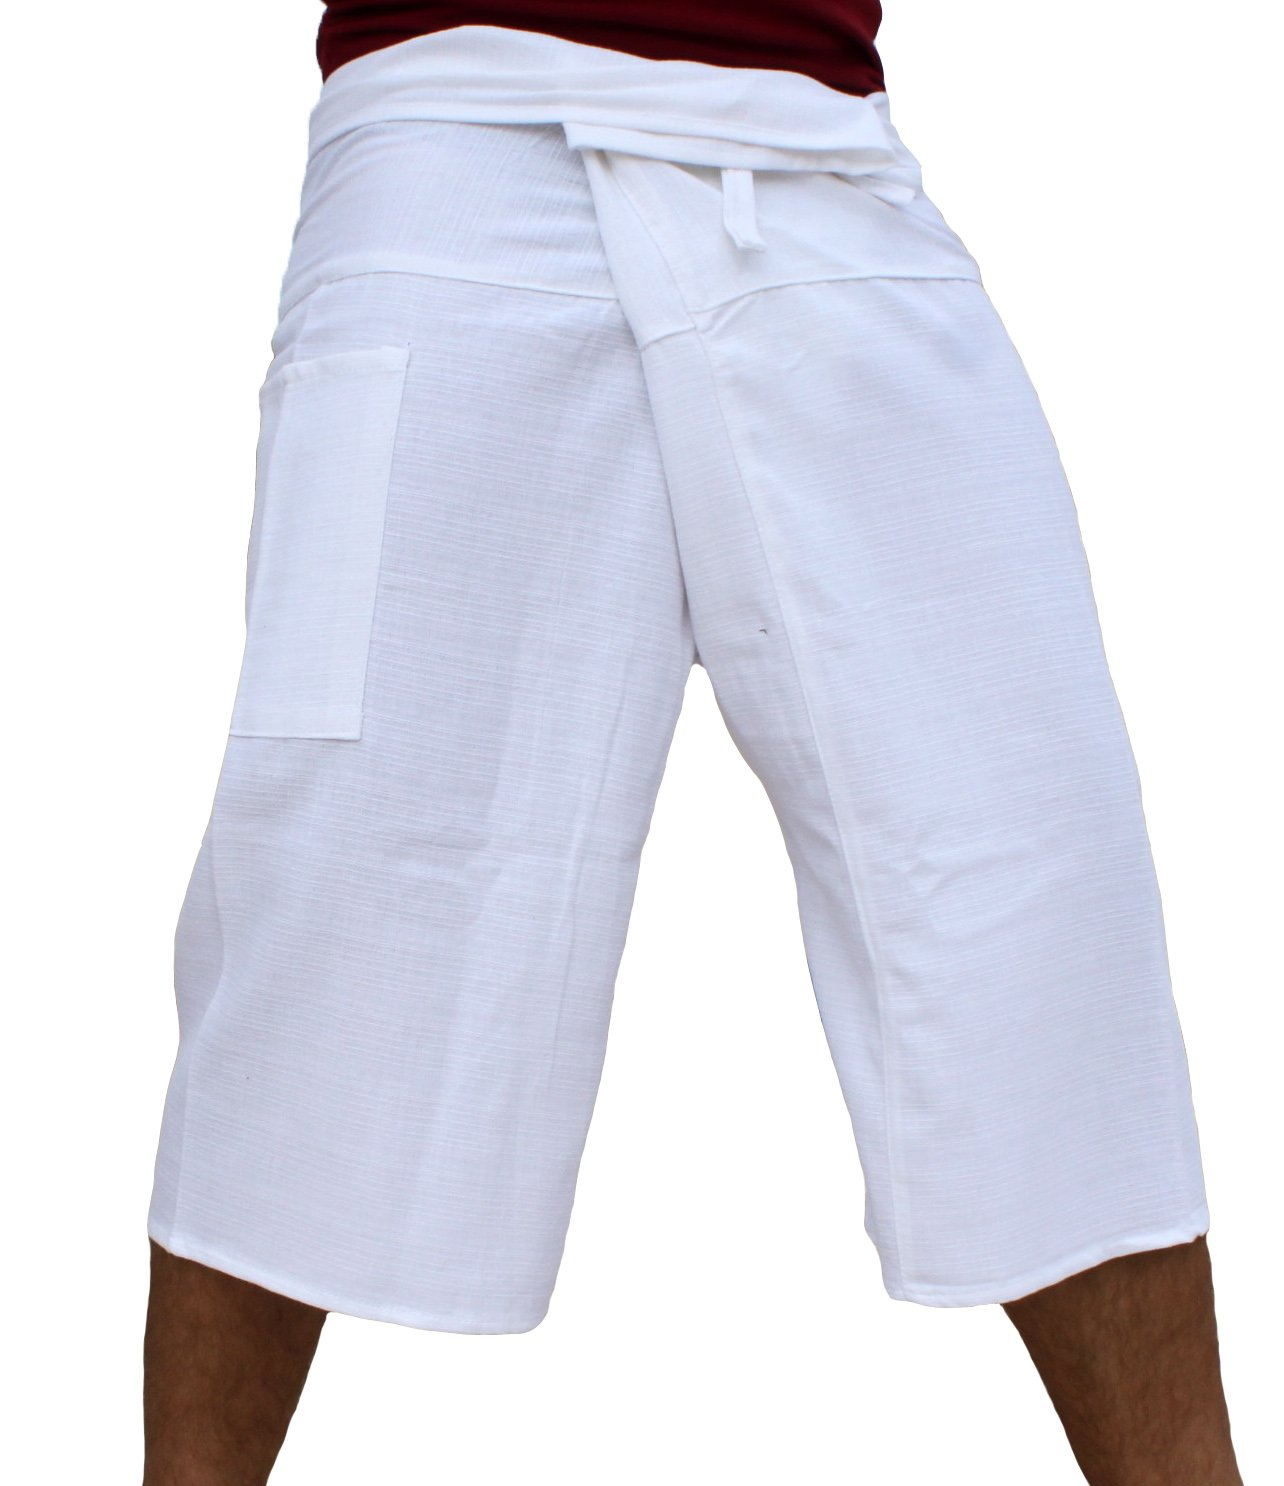 Raan Pah Muang Brand Thick Line Cotton Thai Fisherman Capri Wrap Pants, Medium, White by Raan Pah Muang